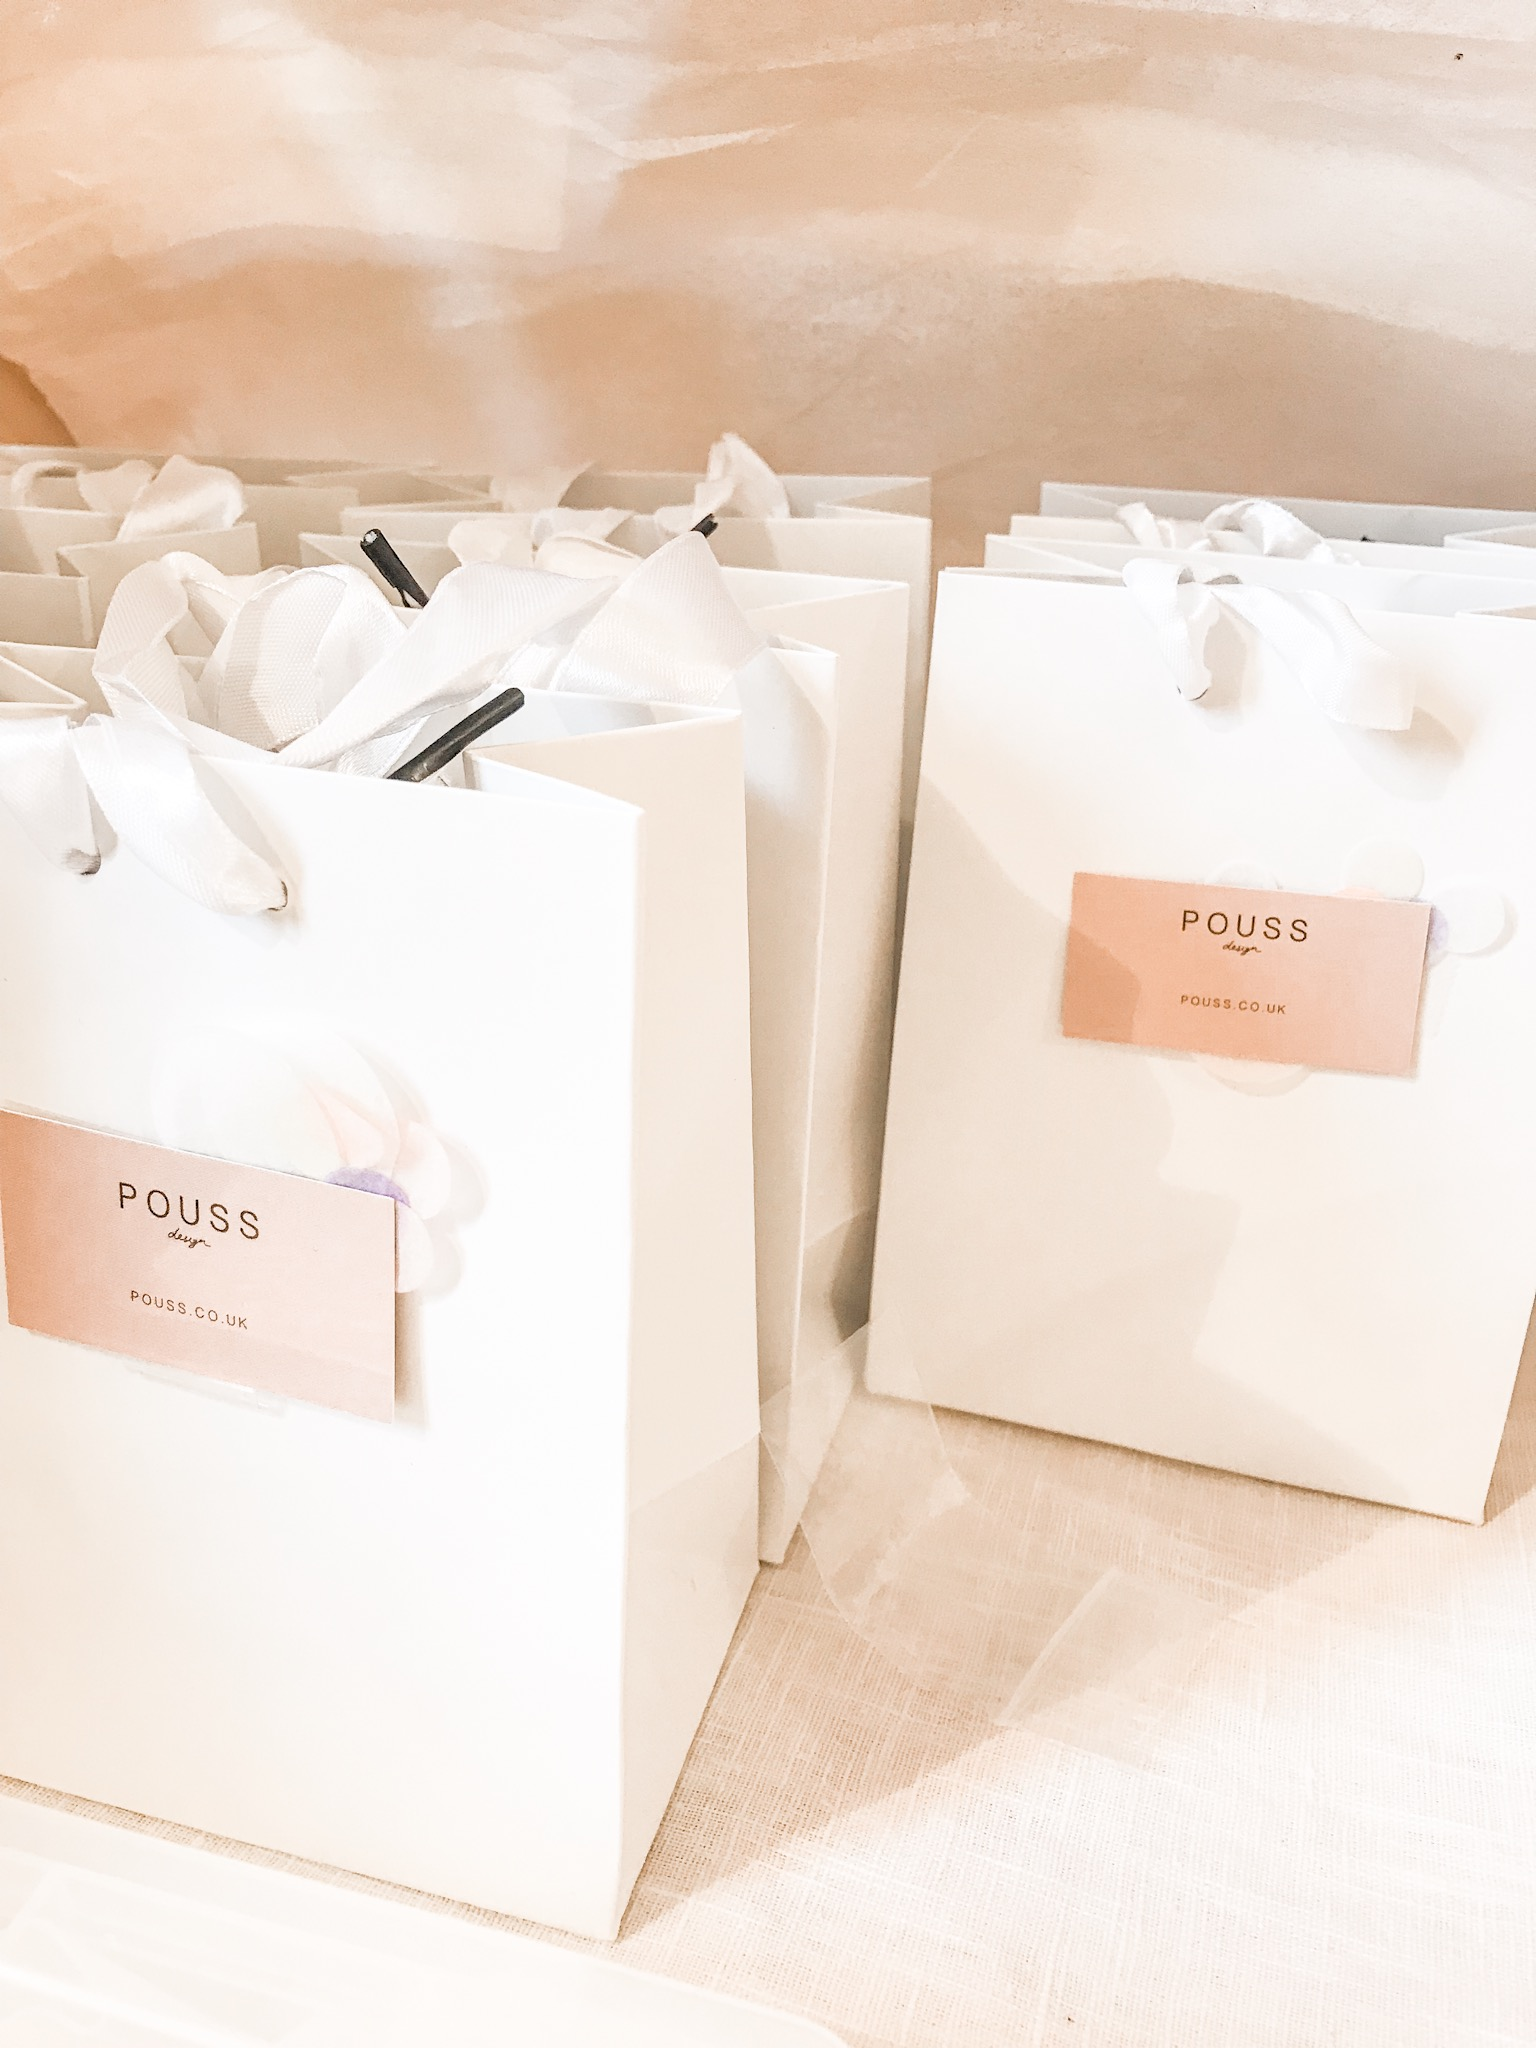 Pouss Jewellery Design gift bags gift market 2018